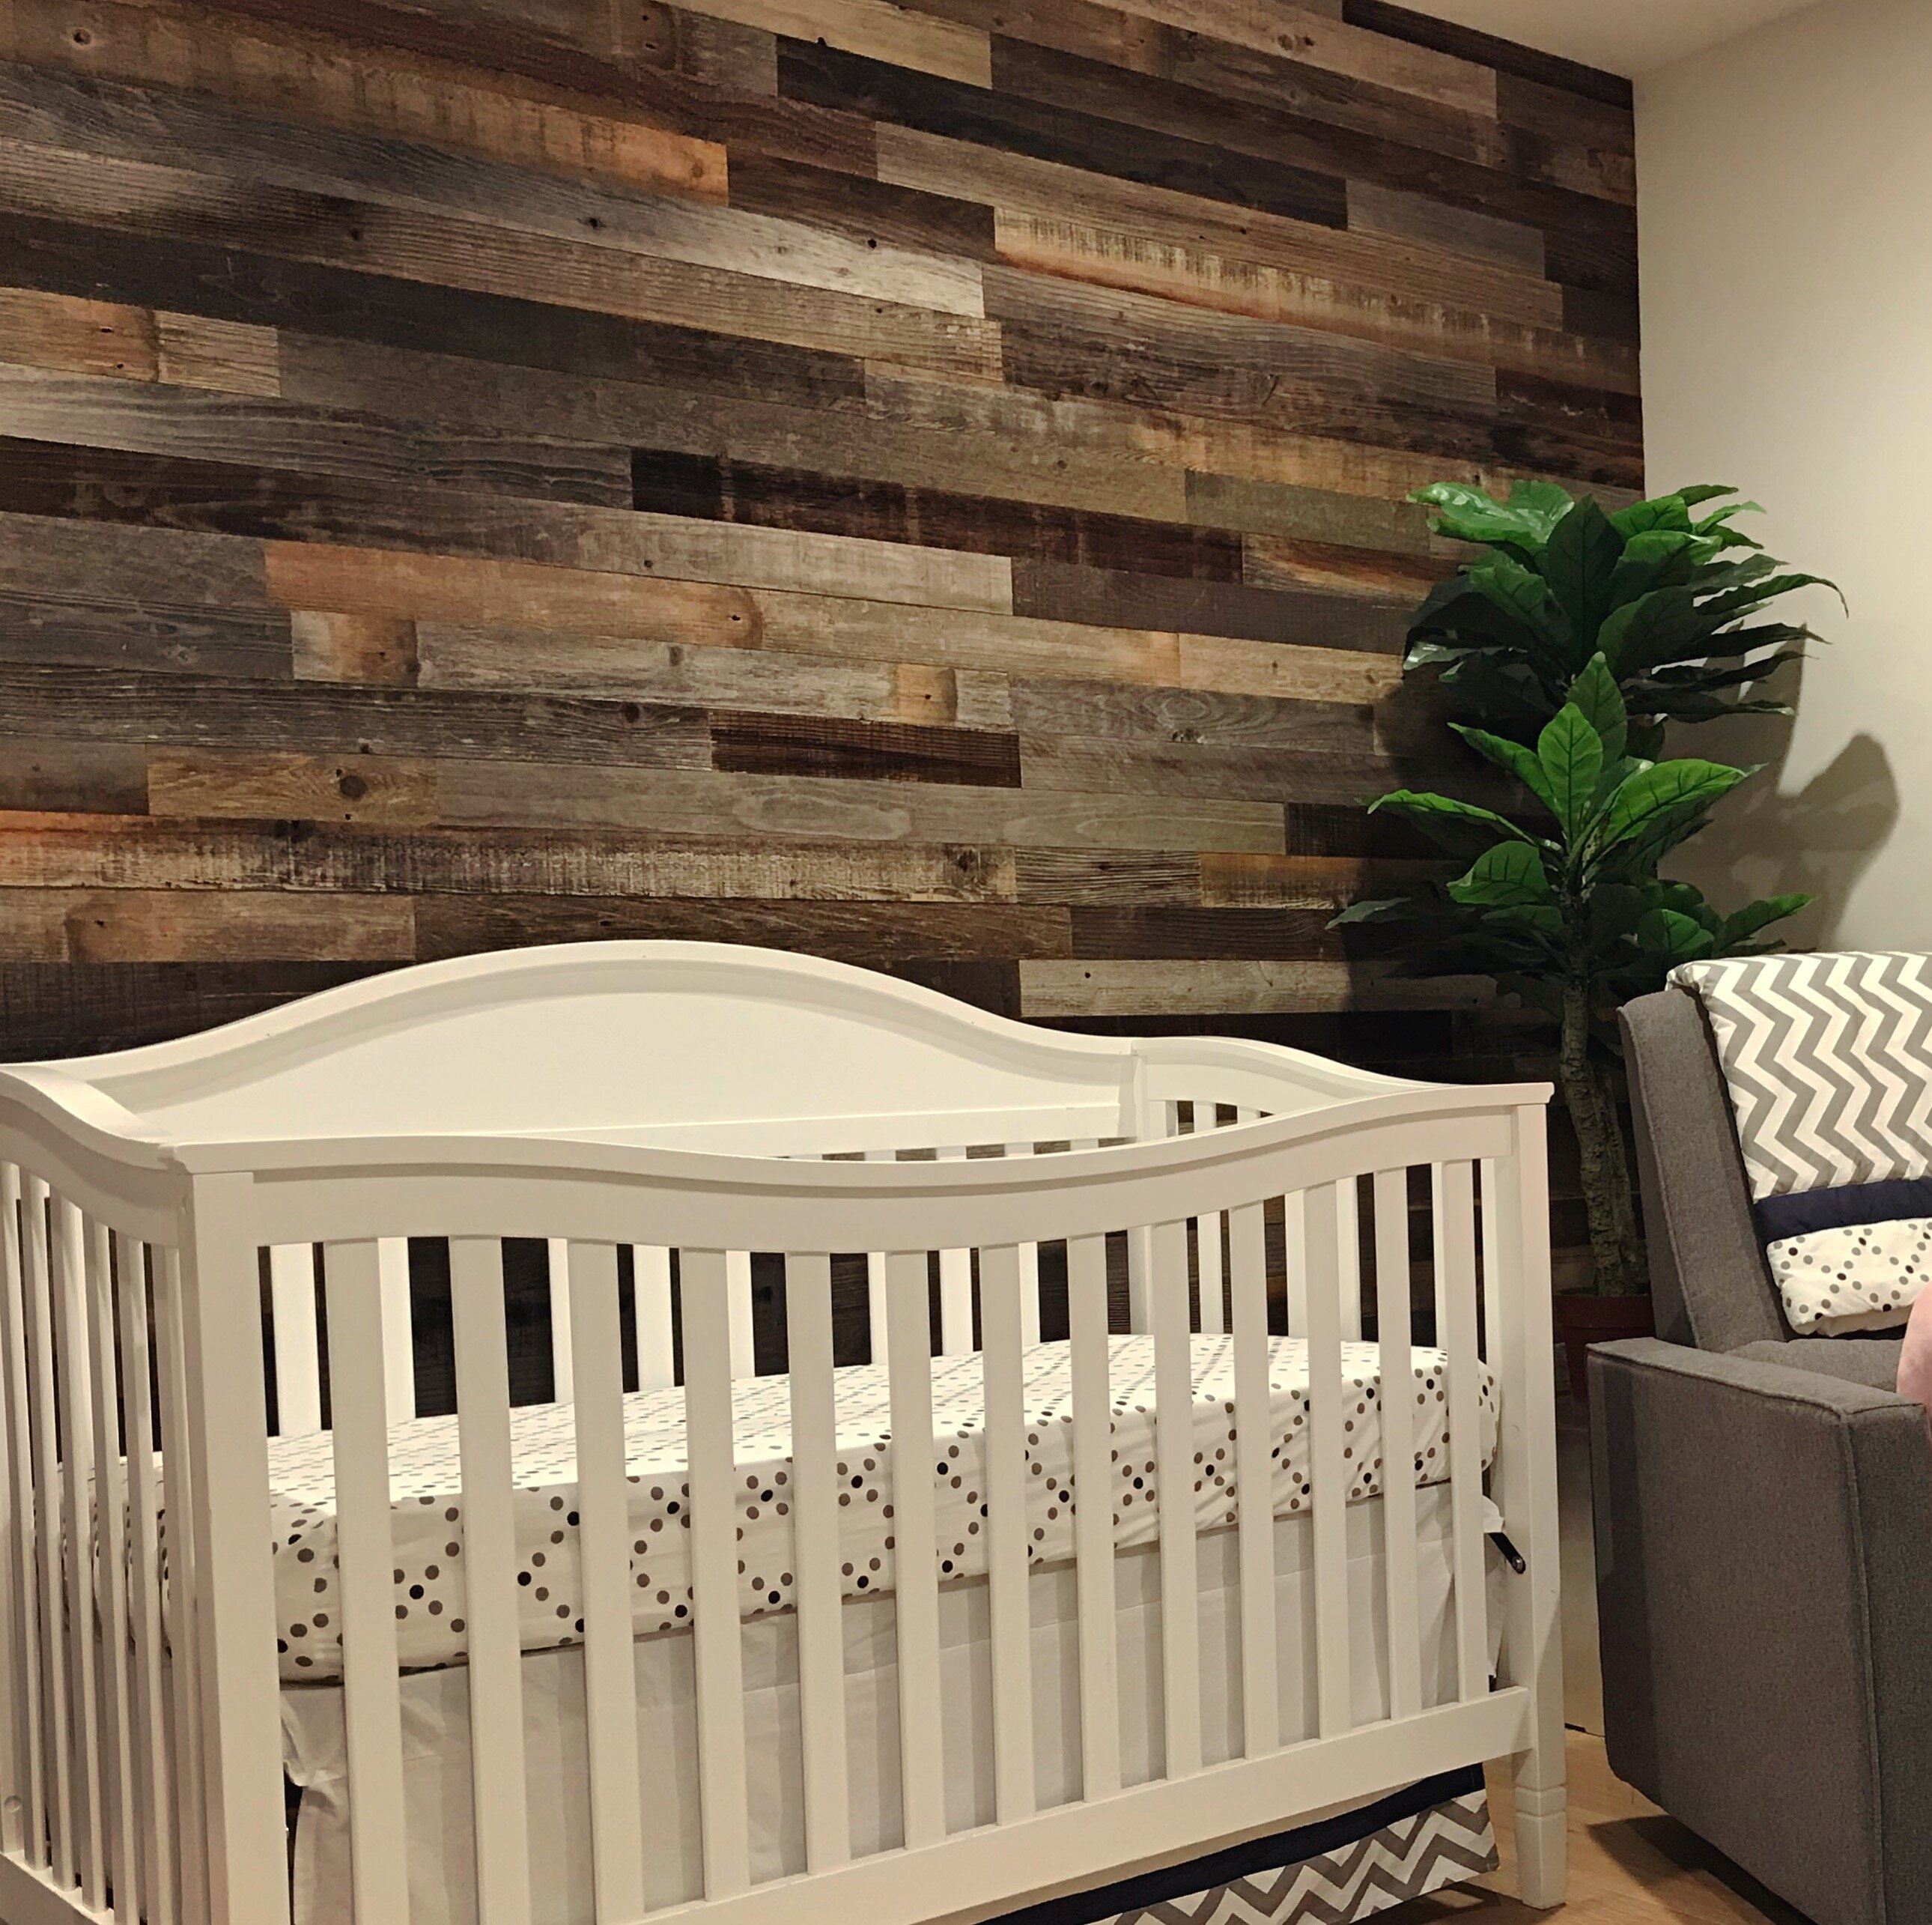 Plankandmill 3 Reclaimed Barnwood L And Stick Wall Paneling In Mixed Gray Brown Reviews Wayfair